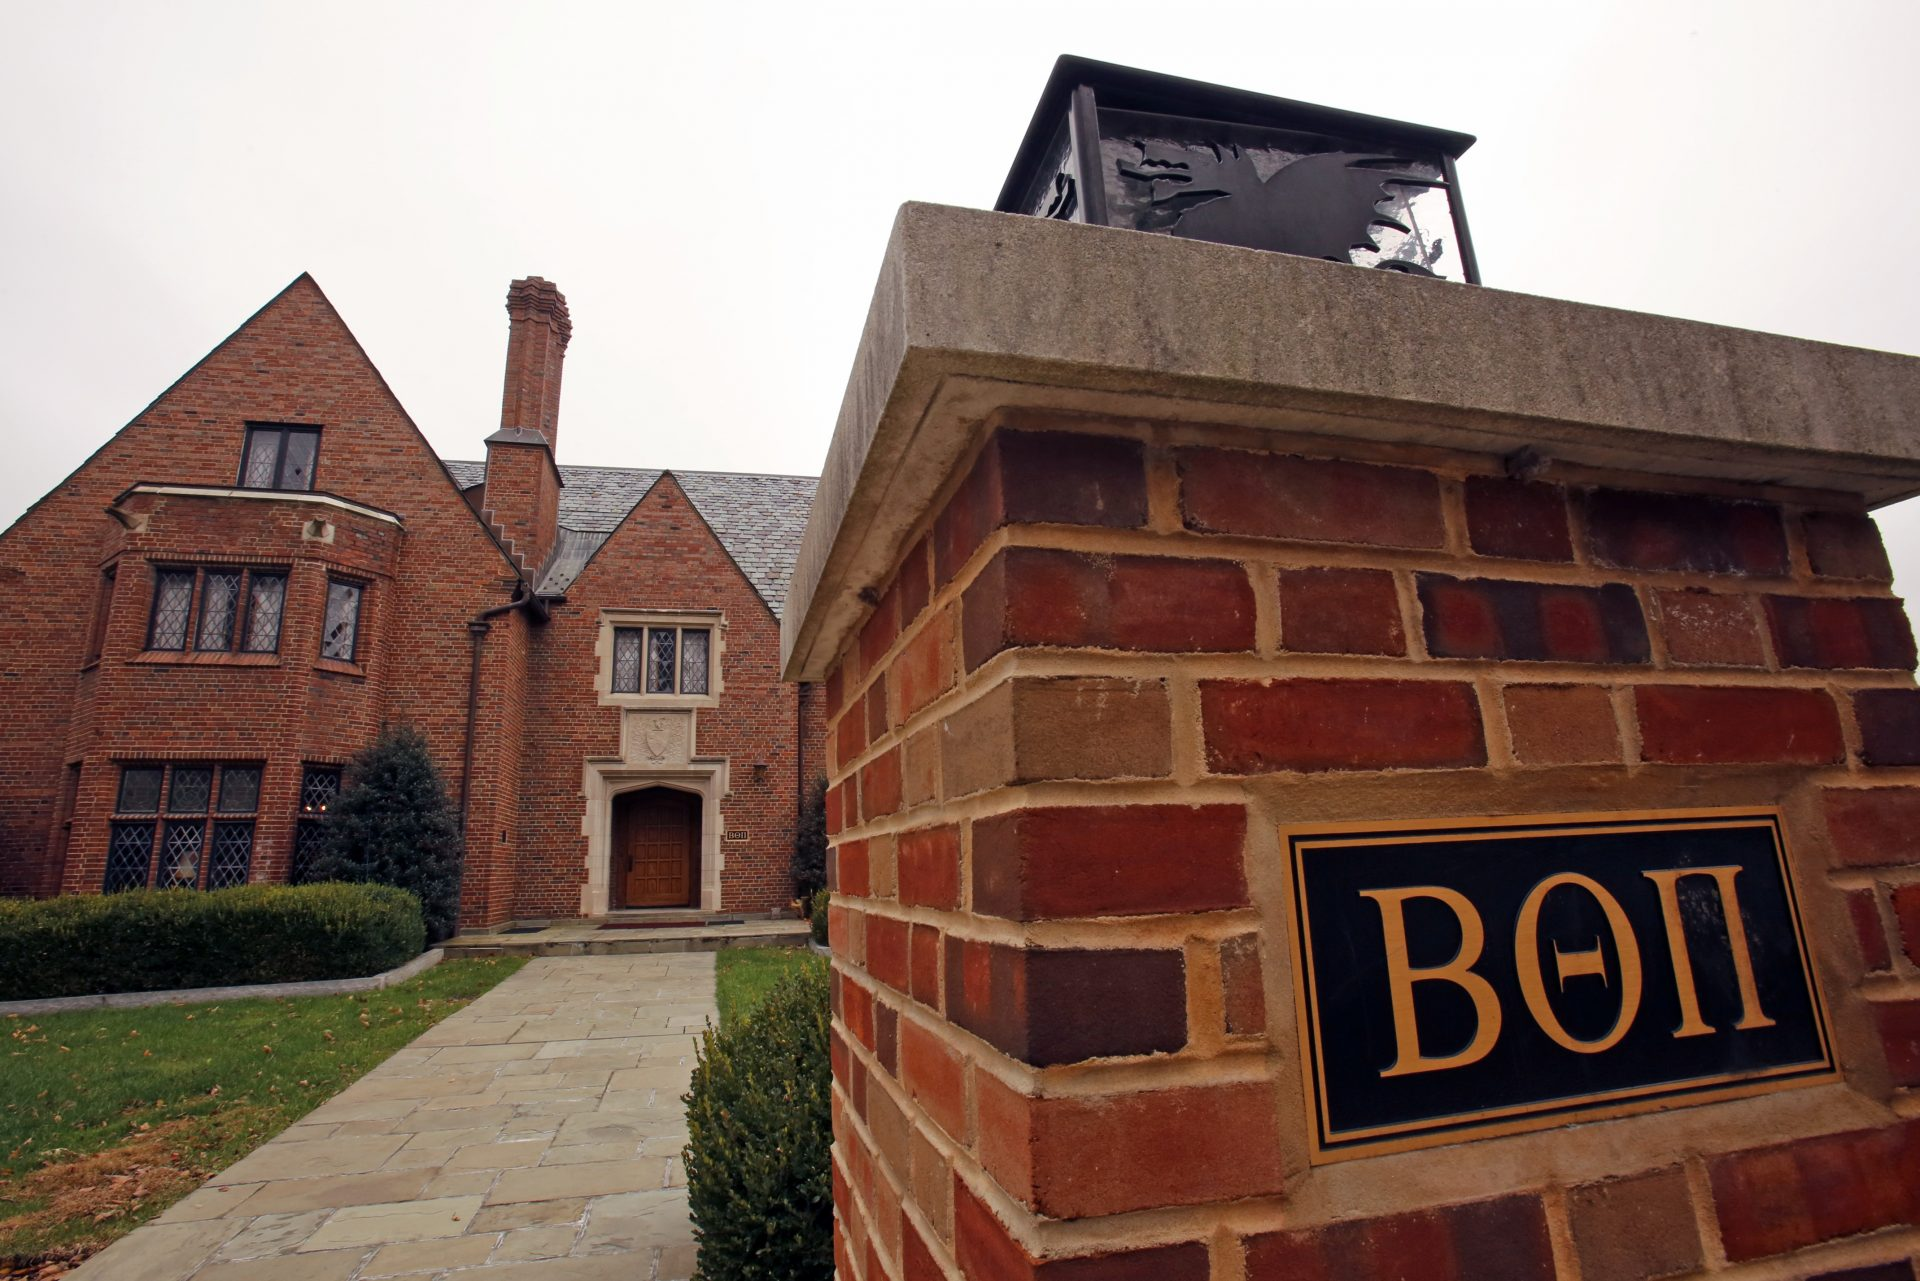 Former Penn State fraternity brother gets two years of